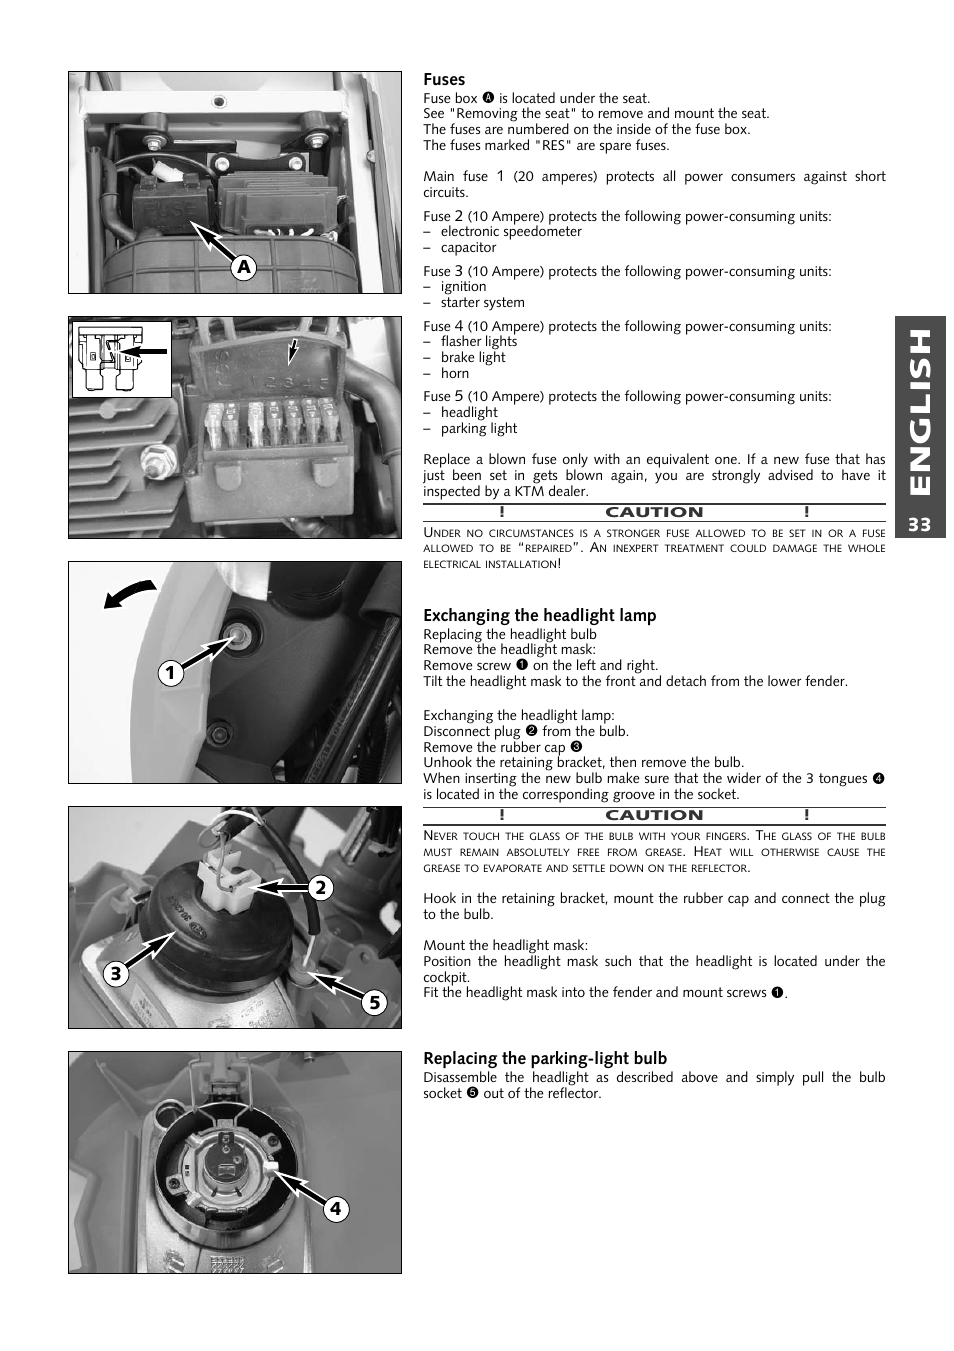 medium resolution of english ktm 640 lc4 enduro user manual page 34 50 rh manualsdir com ktm 640 adventure